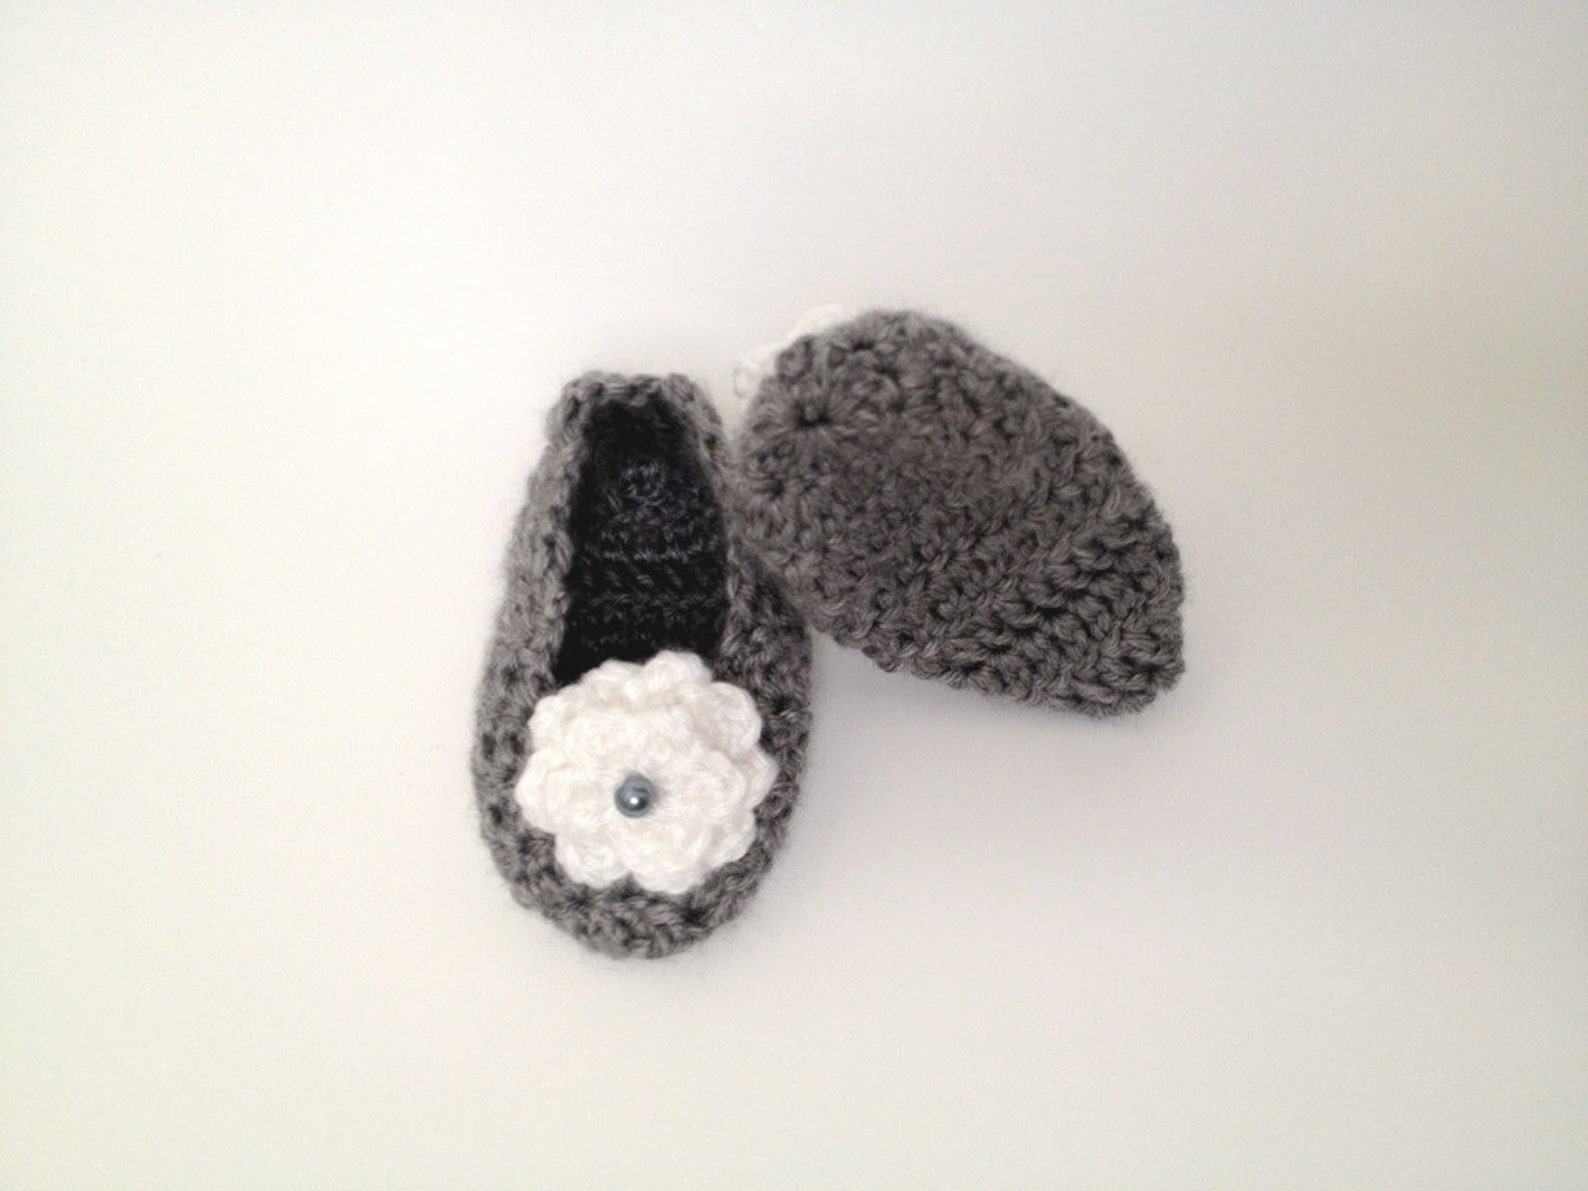 classy sassy slipper (made to match any outfit) crochet knit baby socks shoes ballet flat floral bead variety of color options